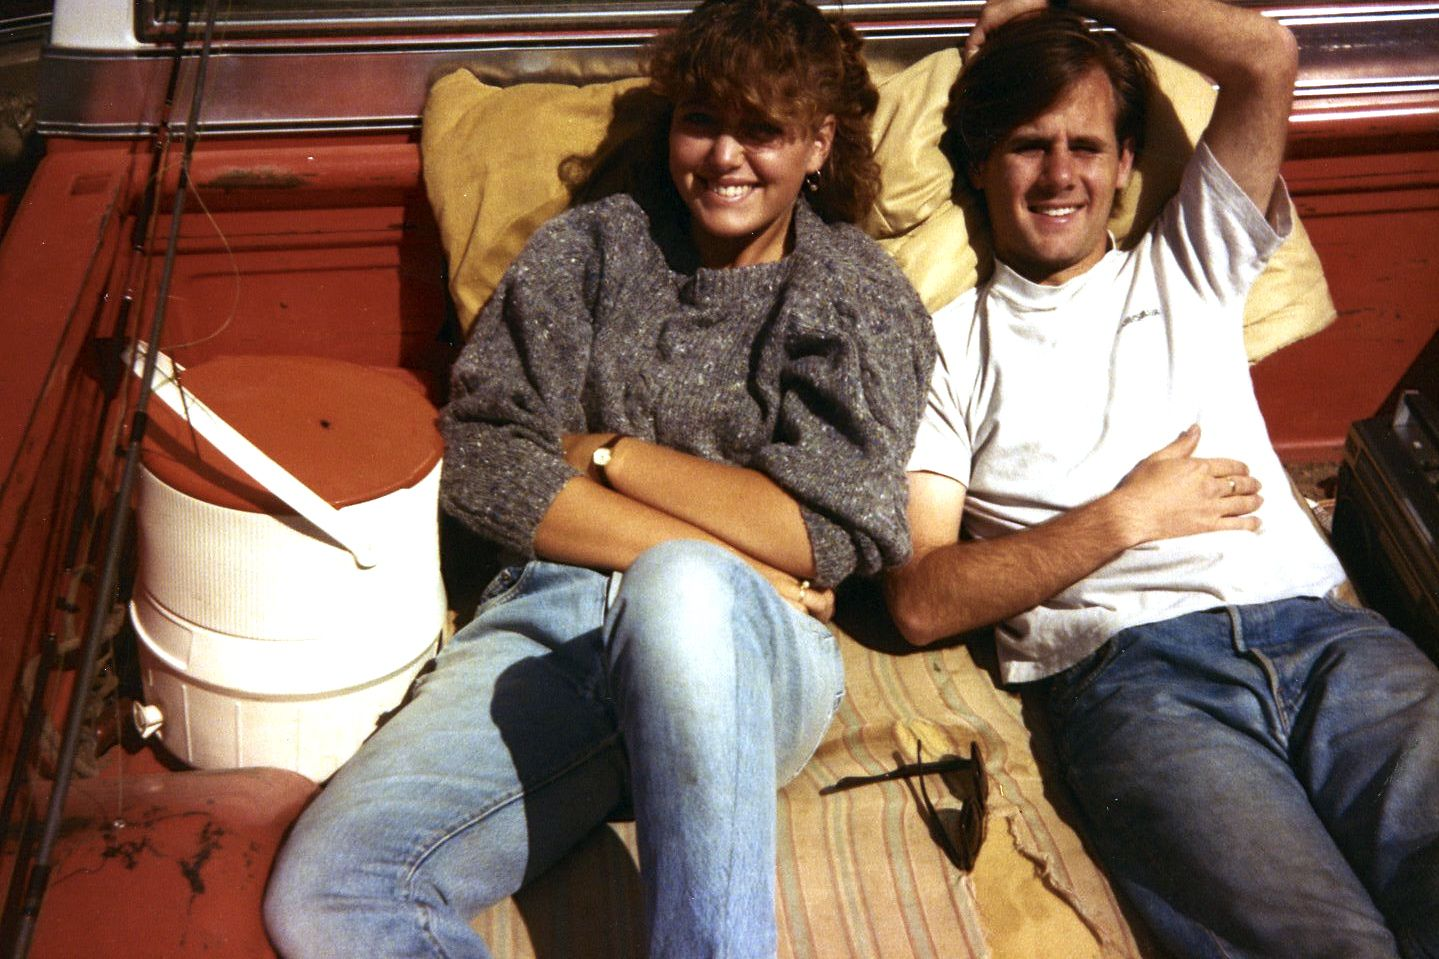 In 1985, I introduced my boyfriend and future husband Morgan to the family tradition of 4-wheel-driving over the San Juan Mountain passes, bouncing along on a ratty old mattress in the back of Dad's truck and stopping to fish along the way.